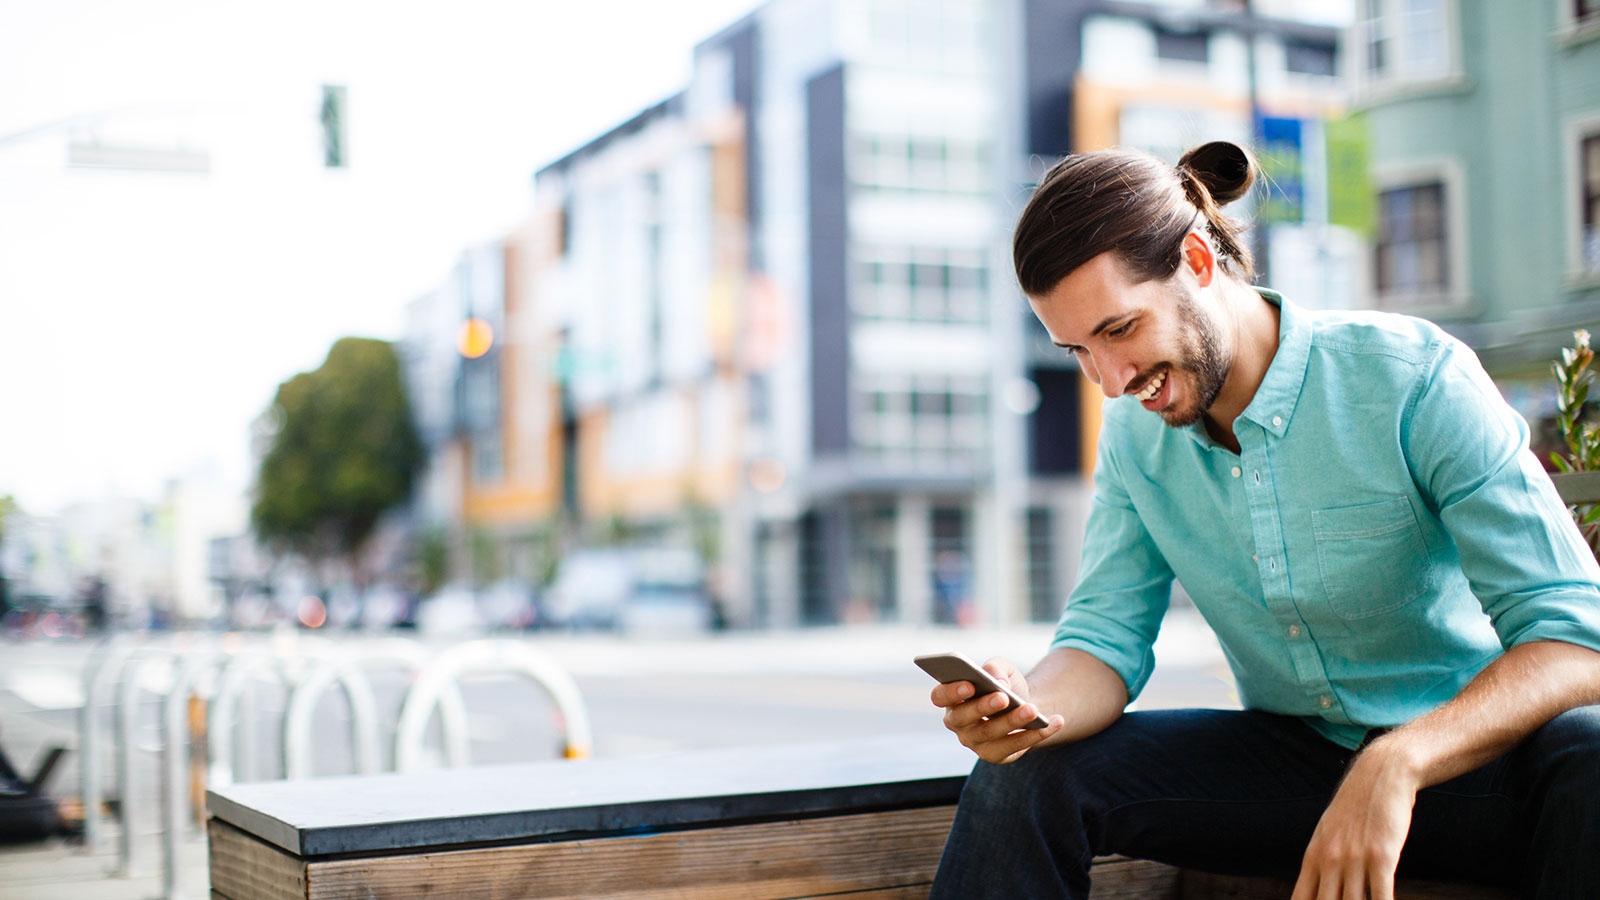 Person sitting on bench using phone